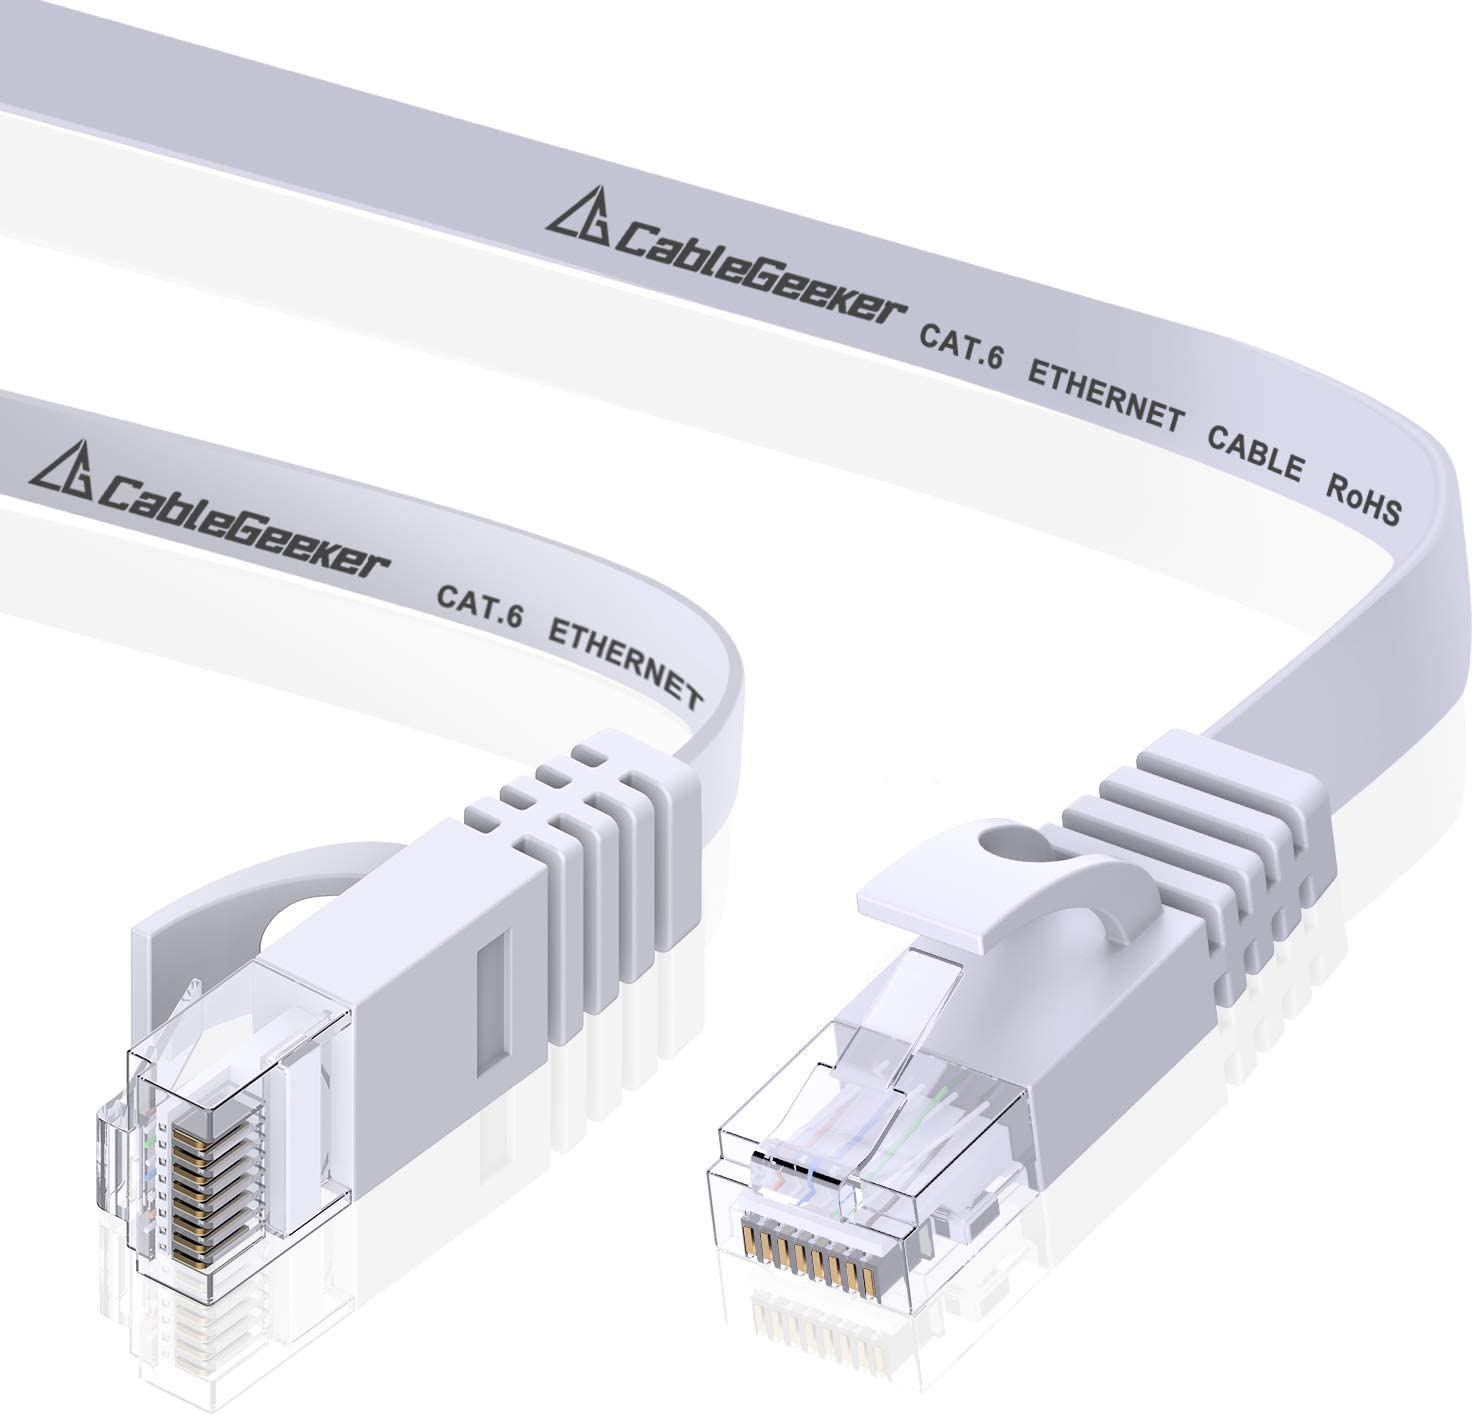 Cat6 Ethernet Patch Cable Short at a Cat5e Price but Higher Bandwidth Cat 6 Ethernet Cable 15ft Flat Internet Network Cable Cat6 Computer Cable with Snagless RJ45 Connectors Black